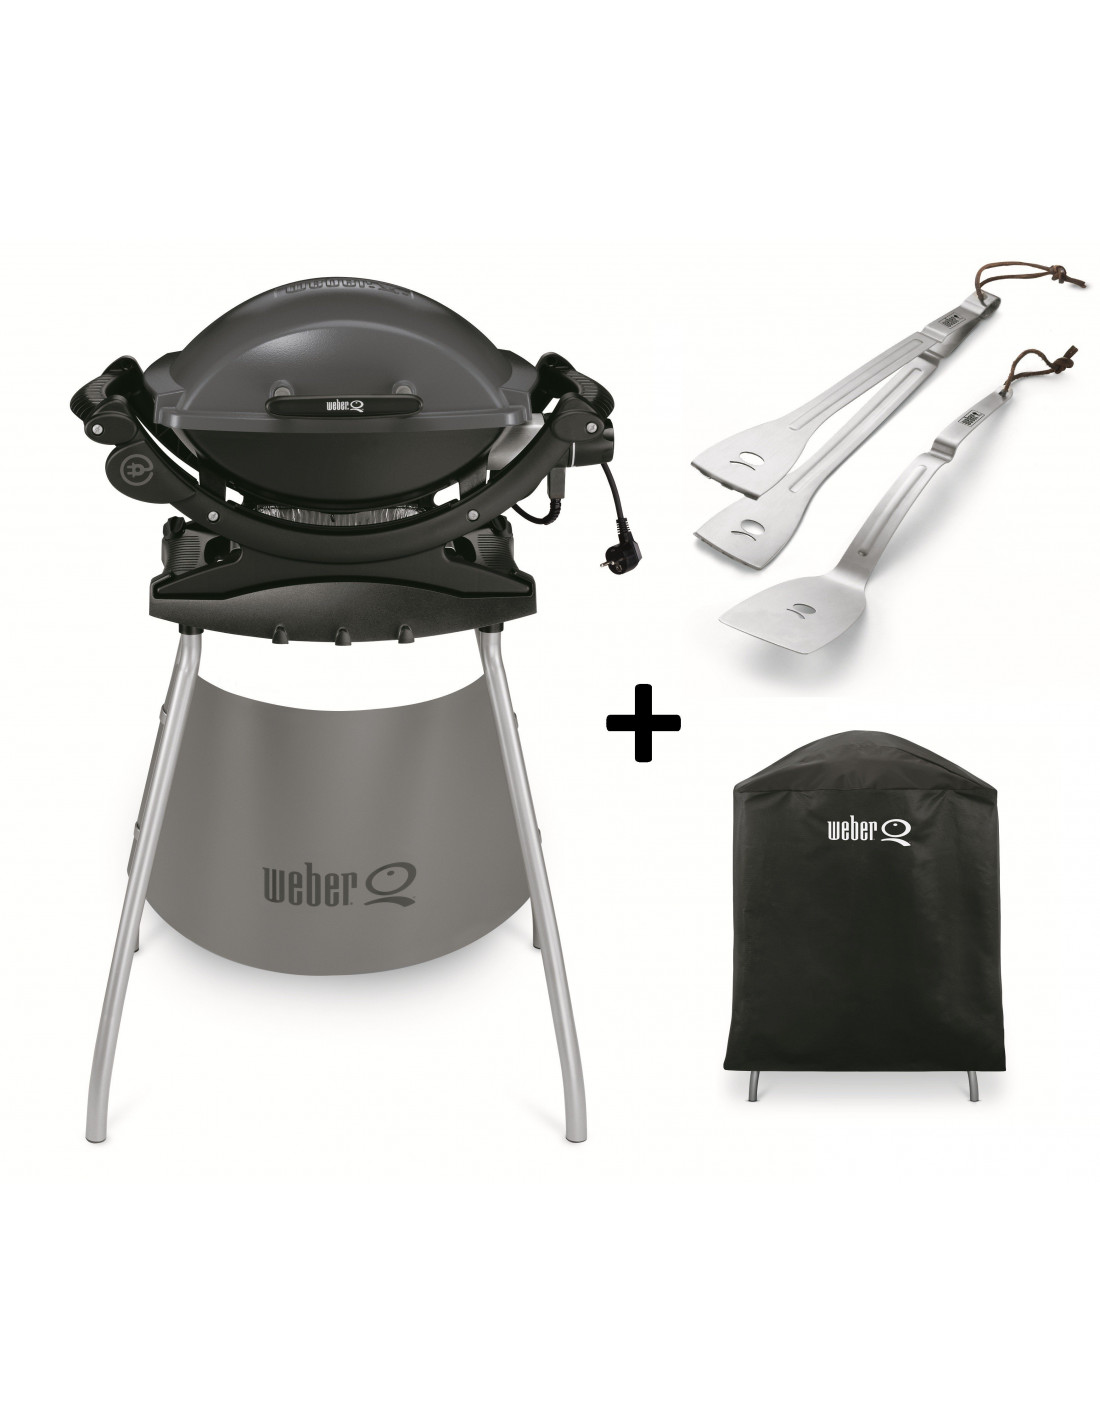 Barbecue electrique q140 stand bbq for Accessoires barbecue weber q140